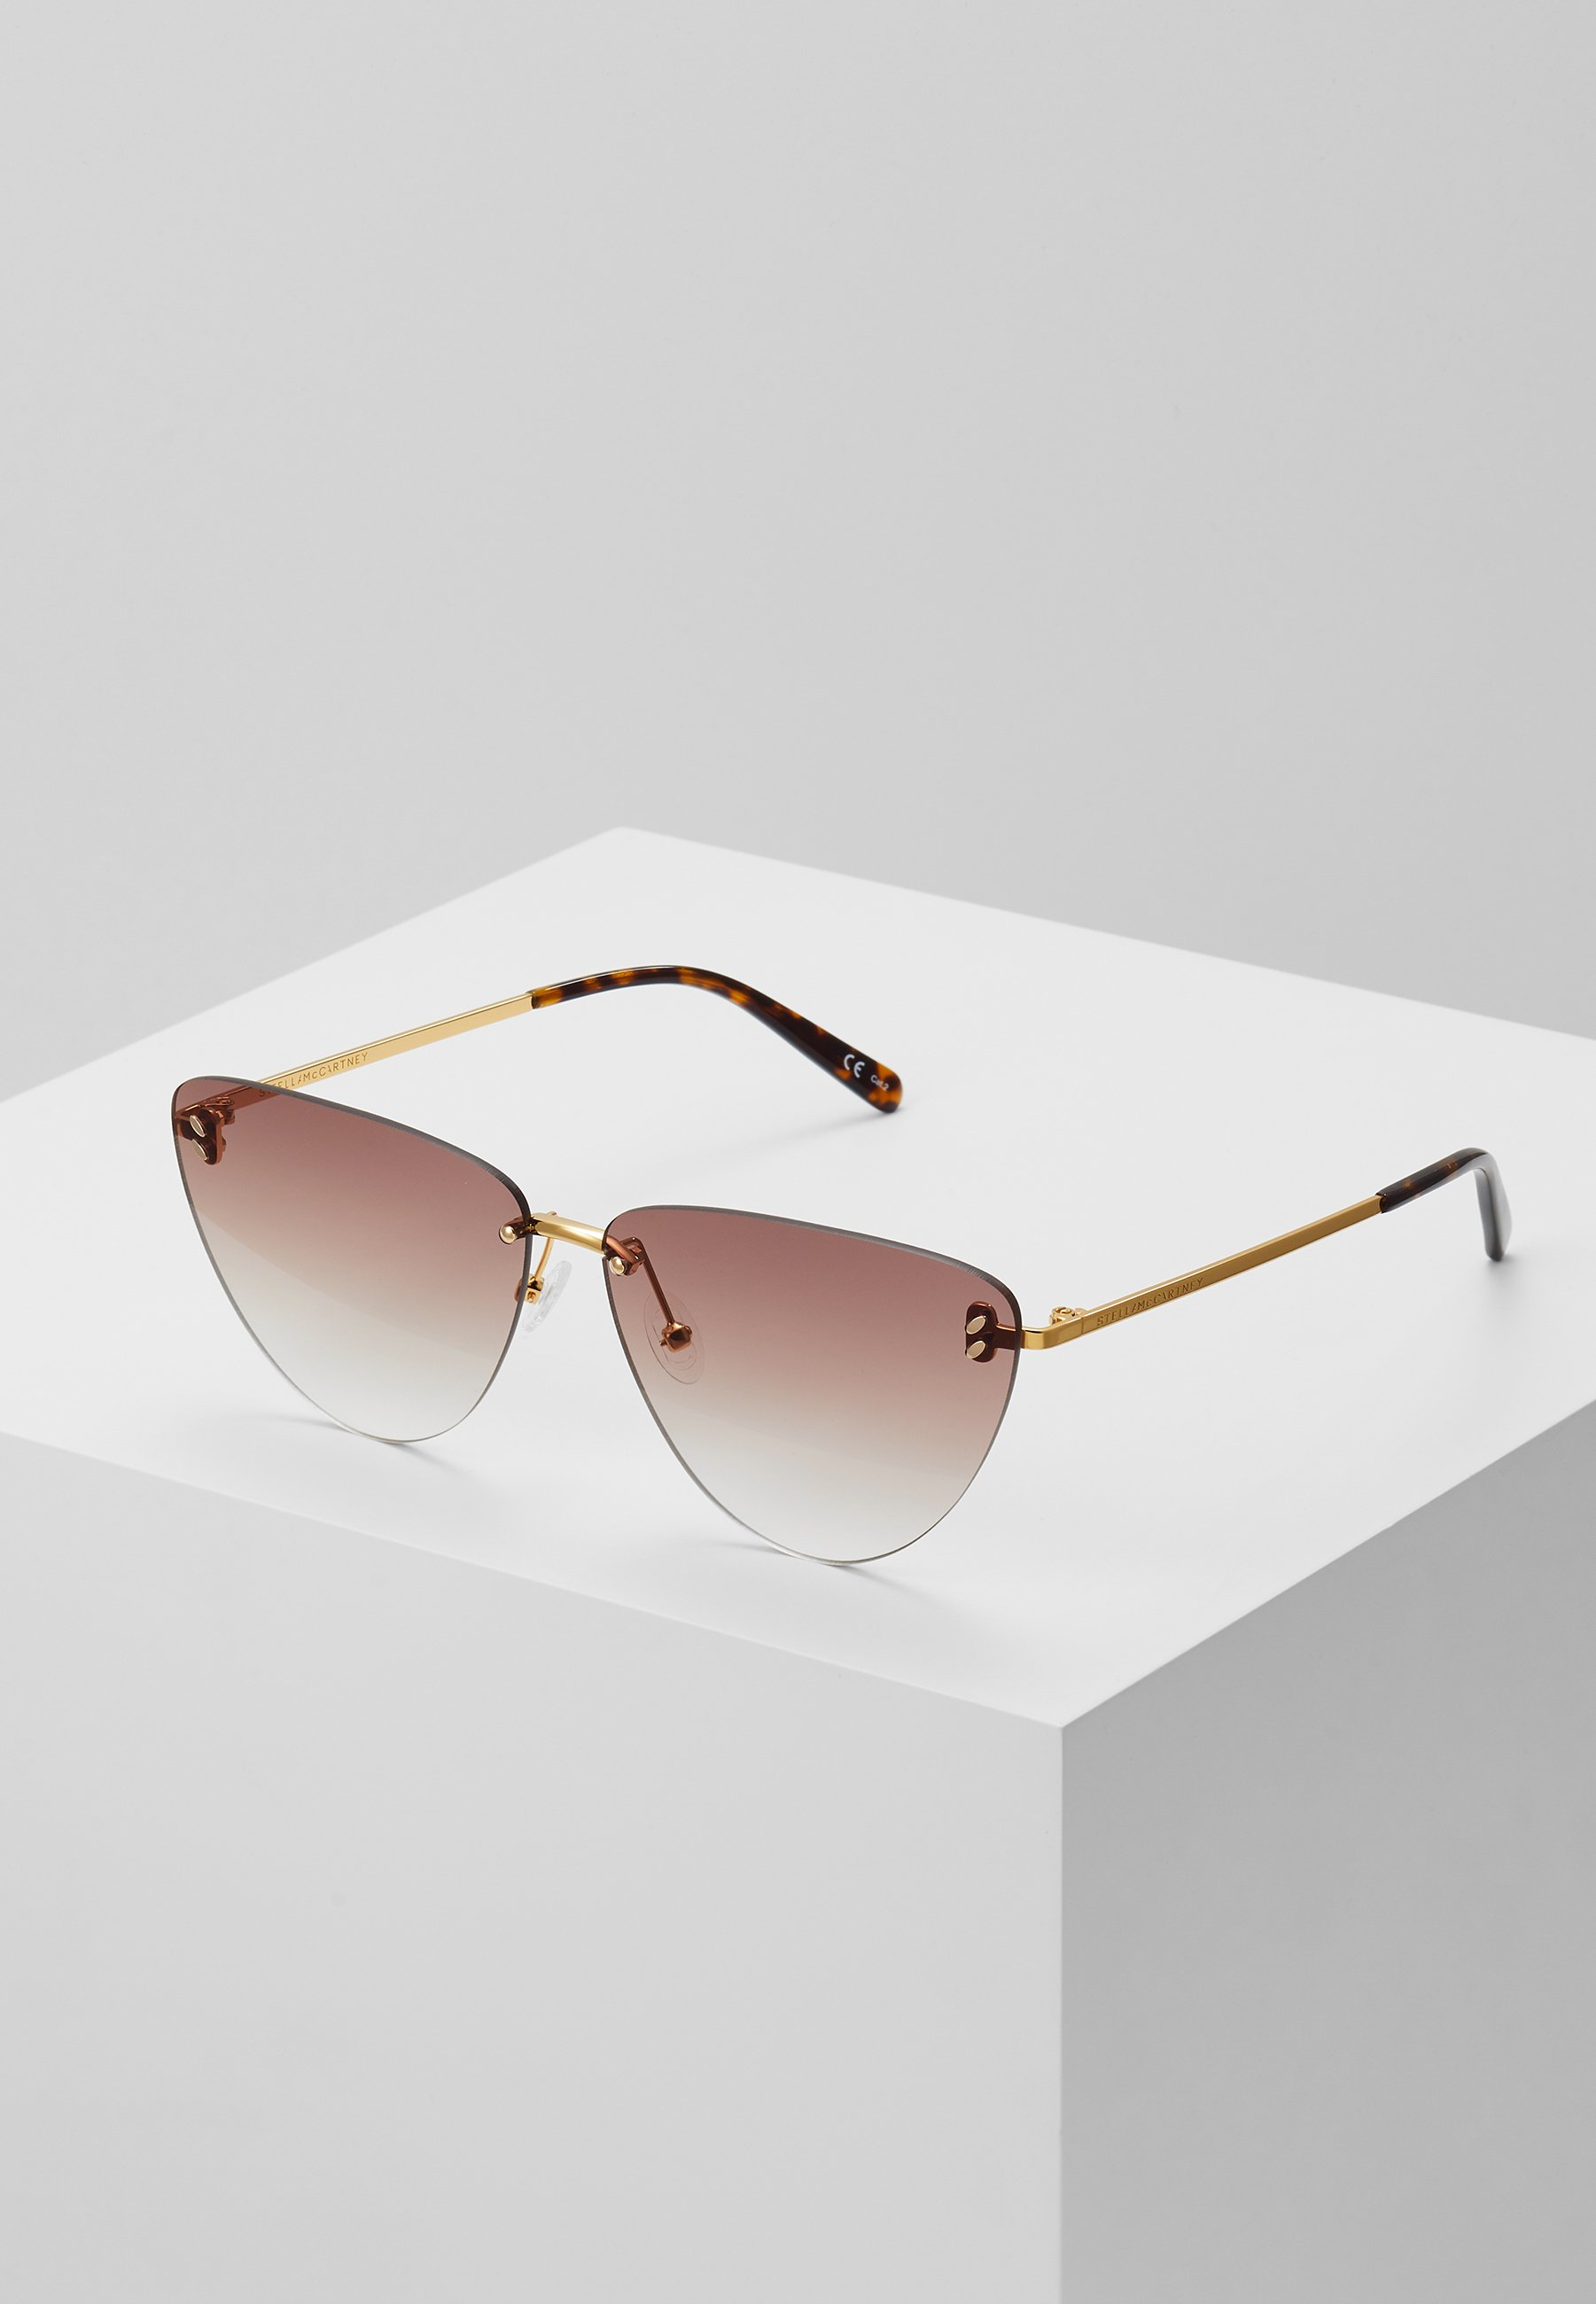 Stella McCartney Sunglasses - gold-coloured/brown